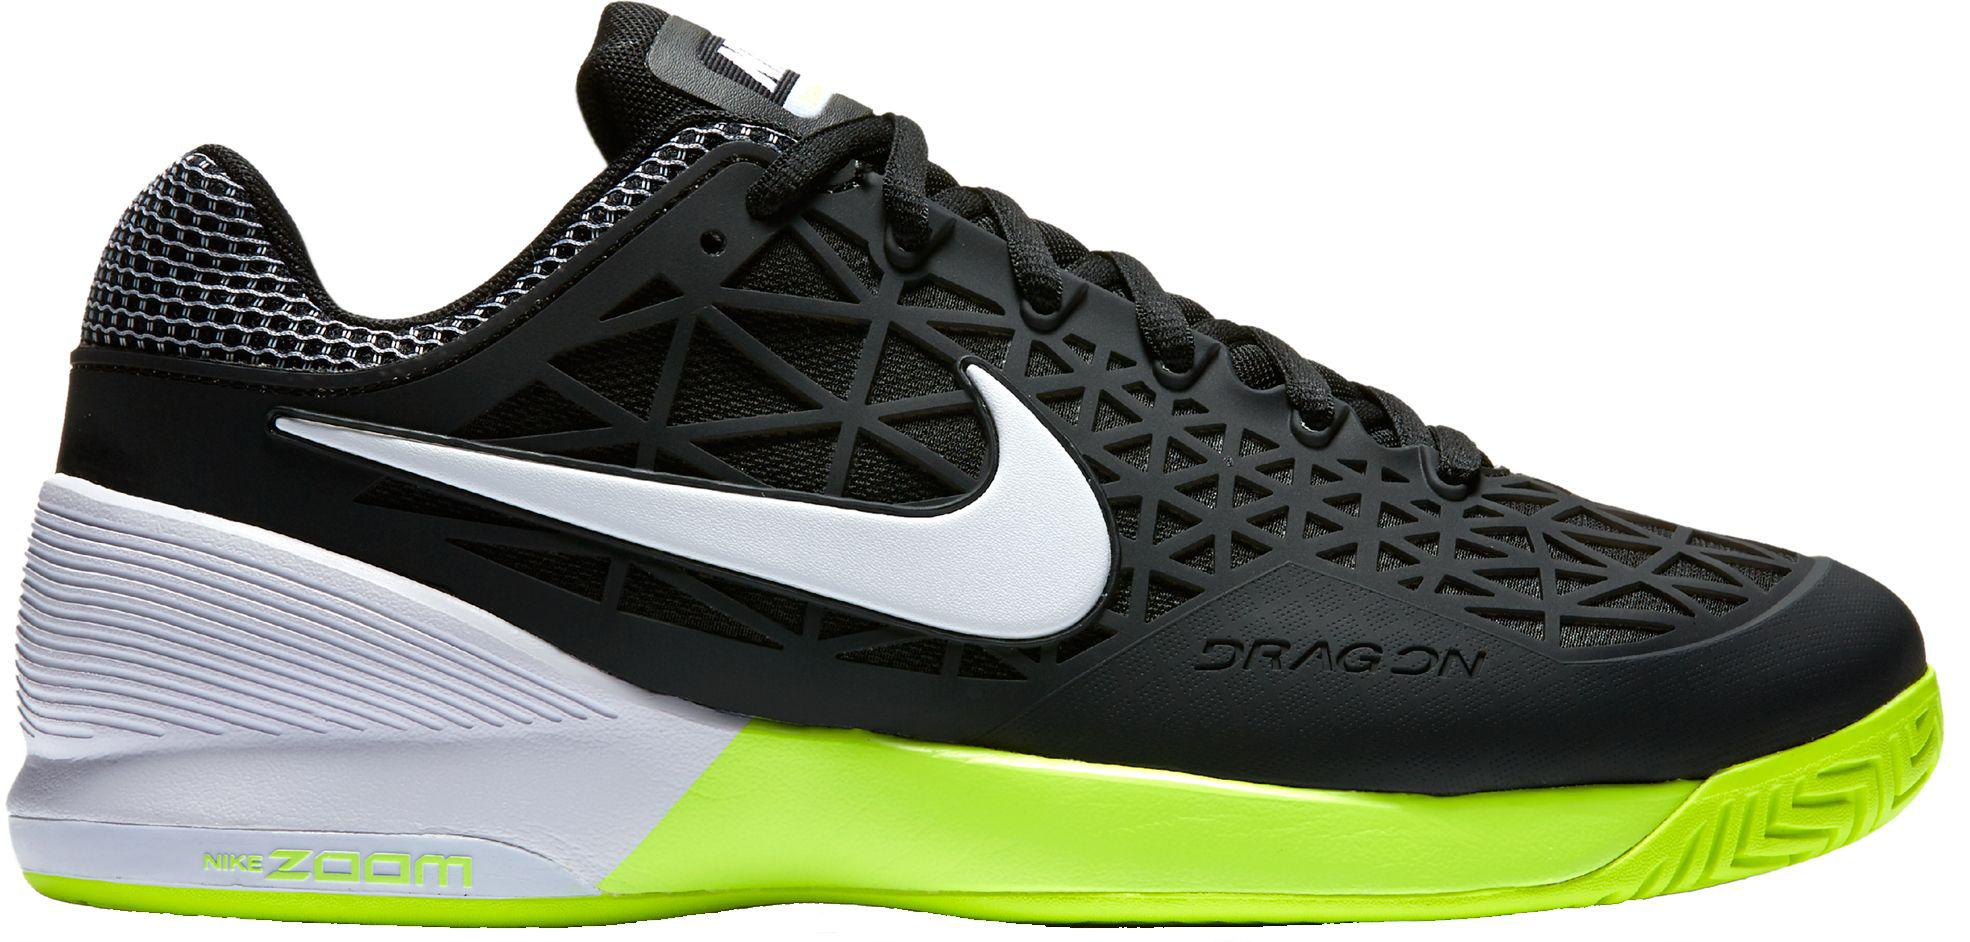 quite nice outlet store new styles Zoom Cage 2 Tennis Shoes